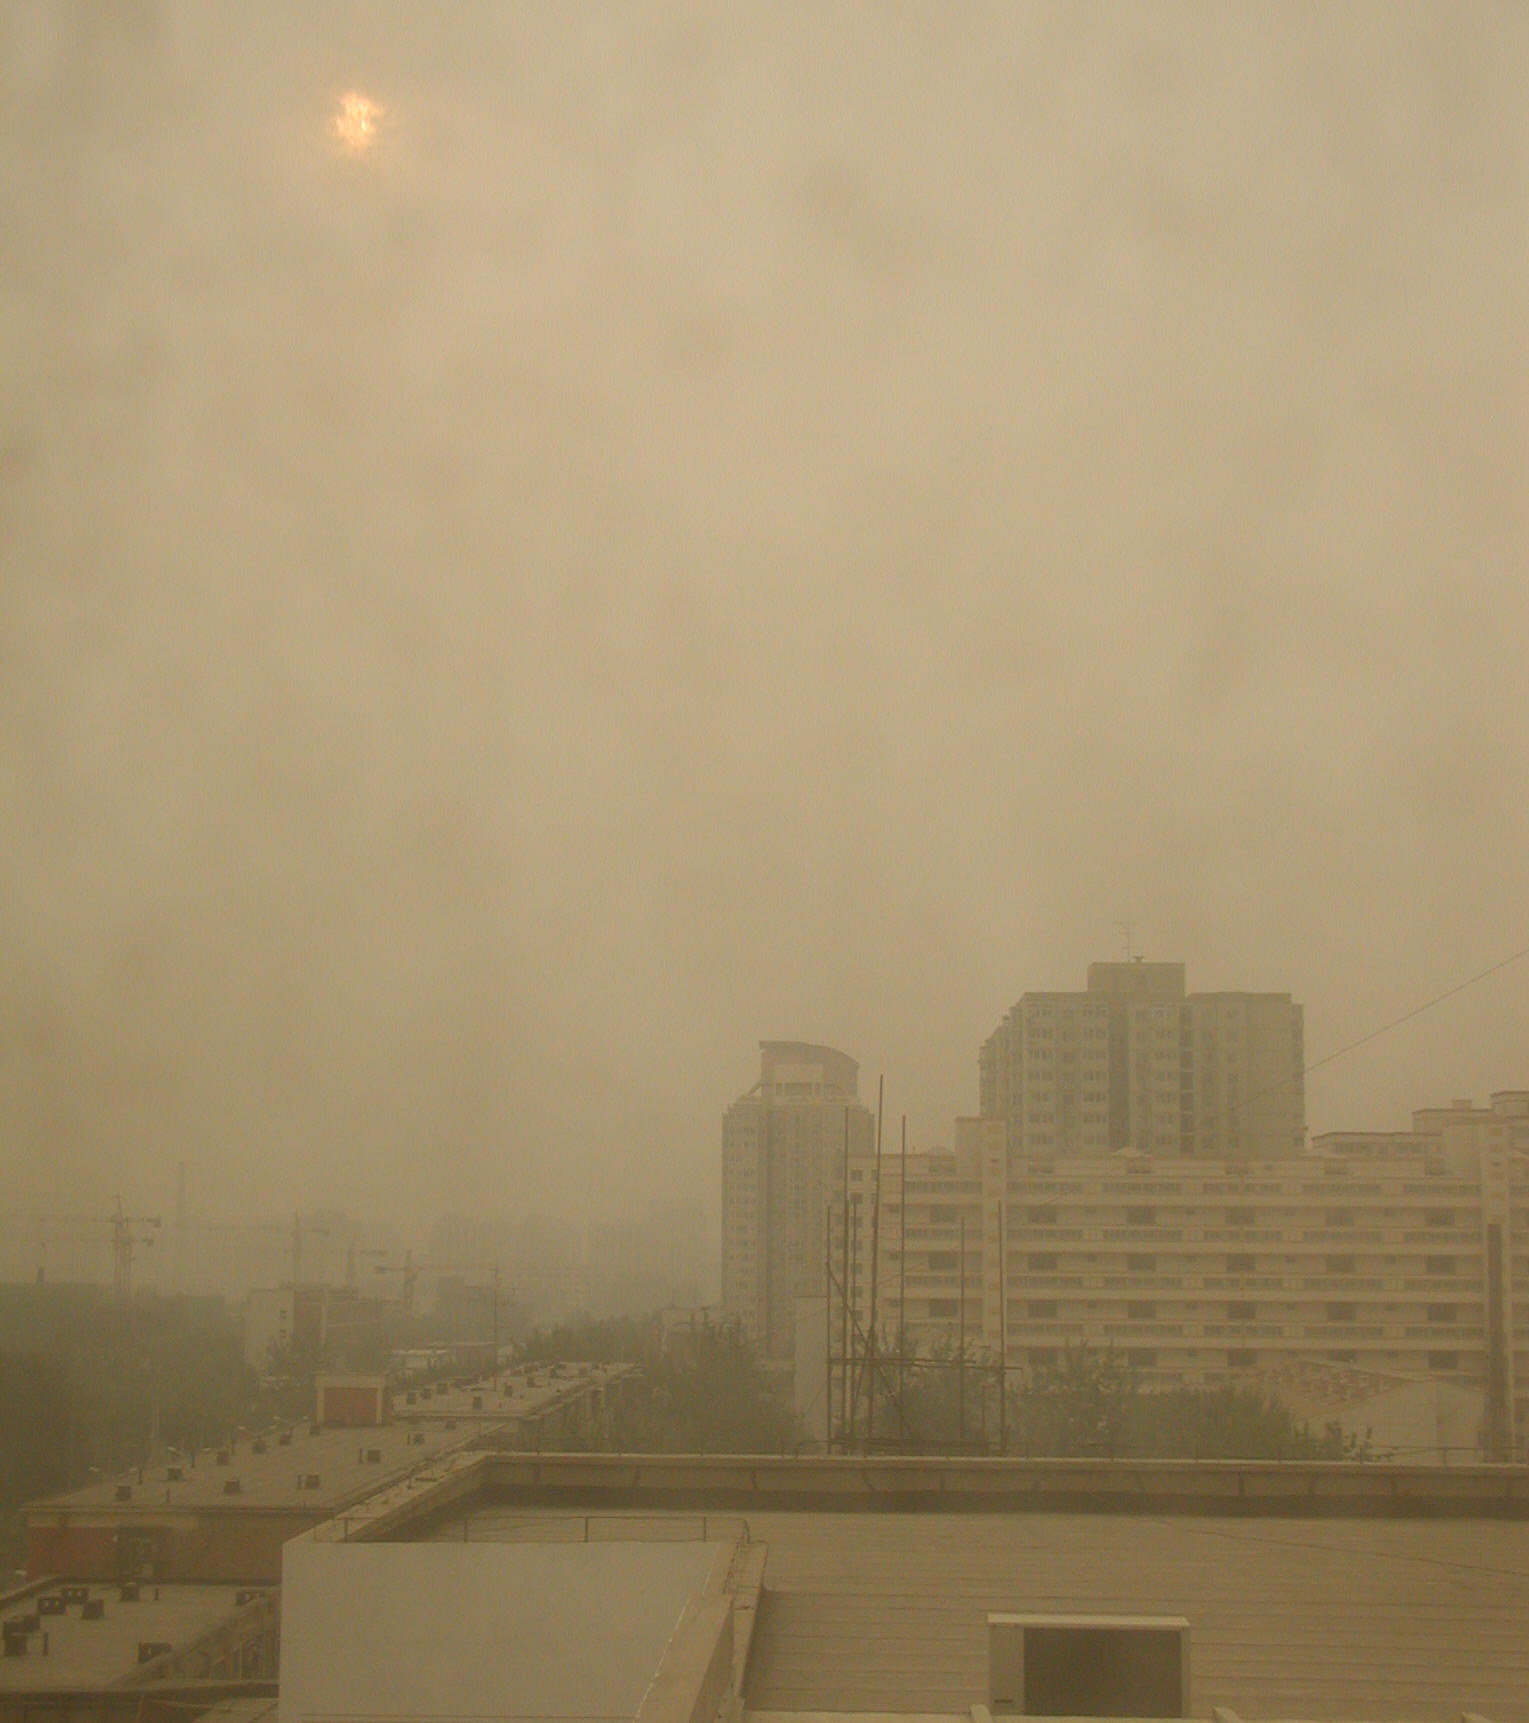 china and smog problem As long as china stayed the world's greatest emitter of pollutants, america had  one less problem to worry about, right  haze of lingering smog, so is it really a  wonder why only 1% of the chinese population in cities breathes.